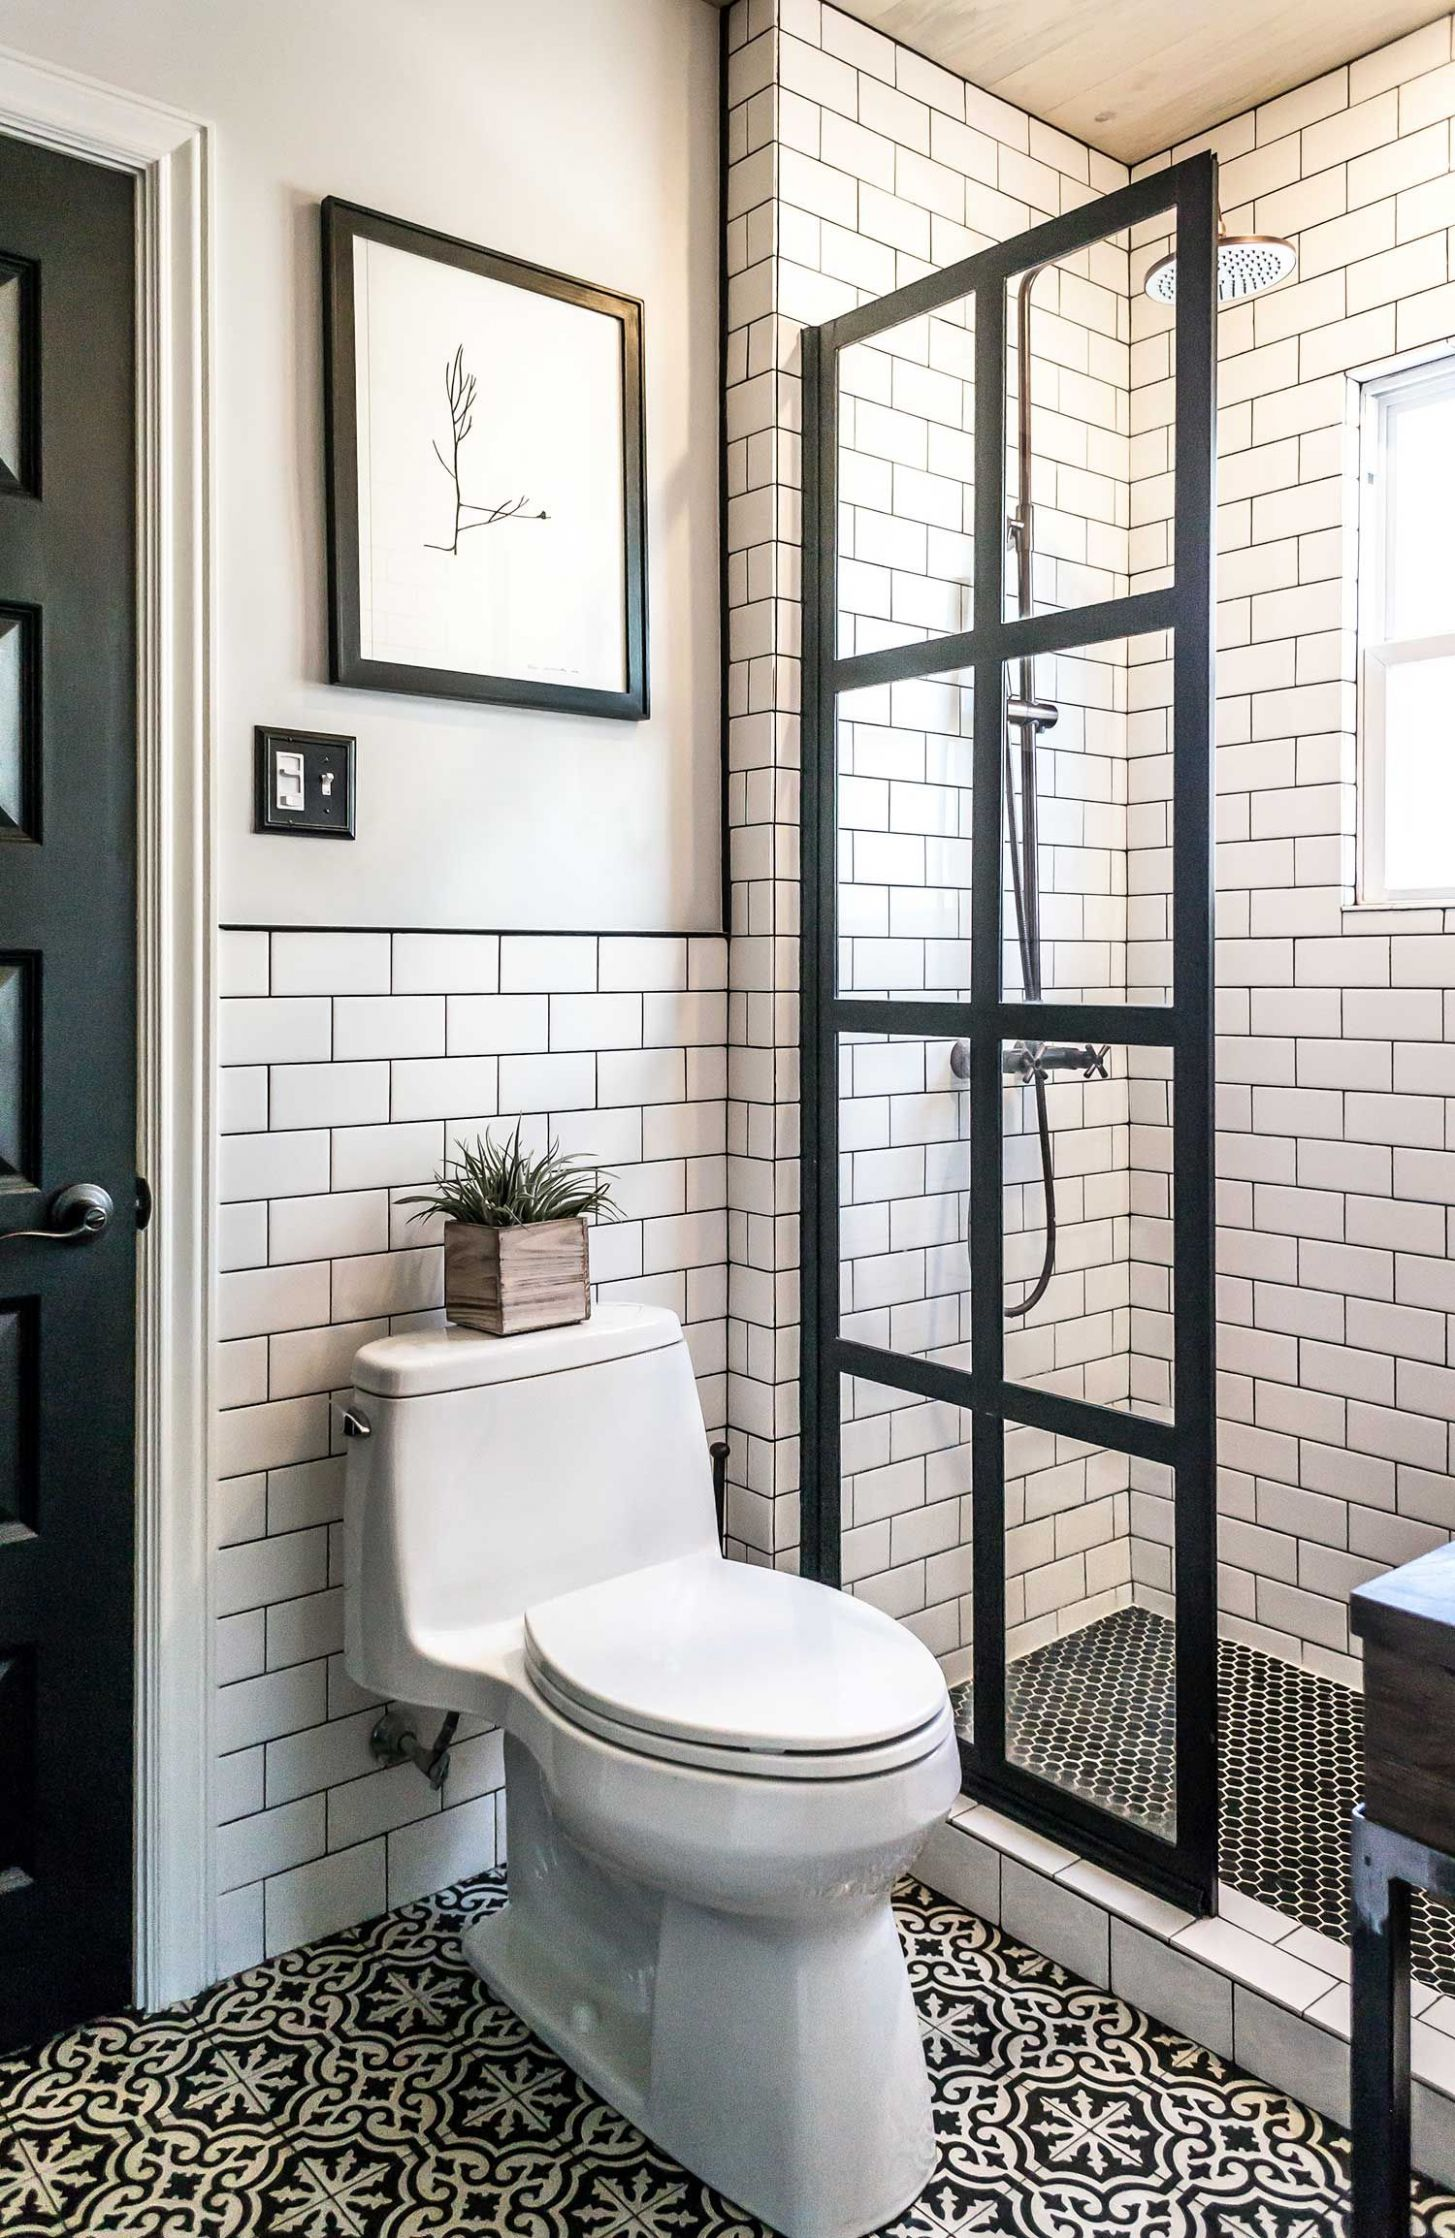 9 Bathroom Ideas For Small Spaces İdeas | Bathroom design small ..